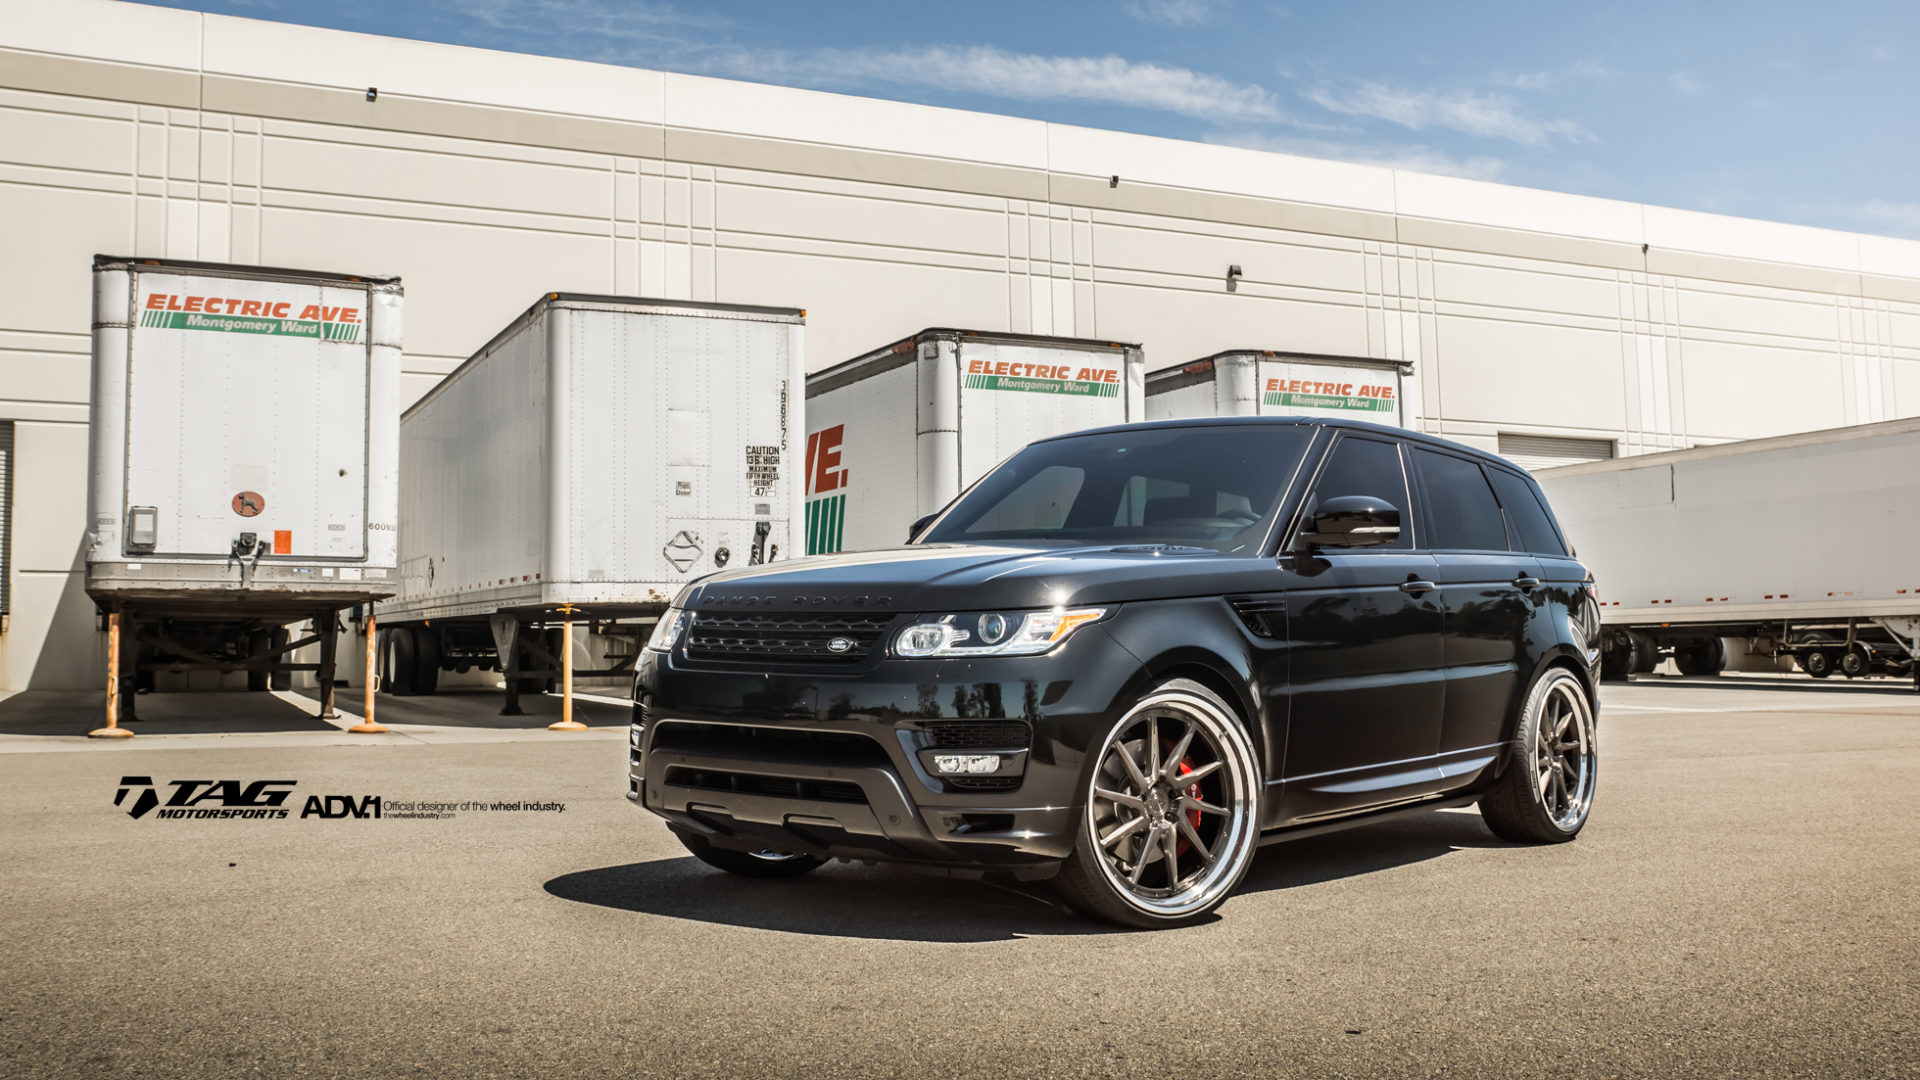 Adv One Direction Range Rover Sport Tag Motorsports